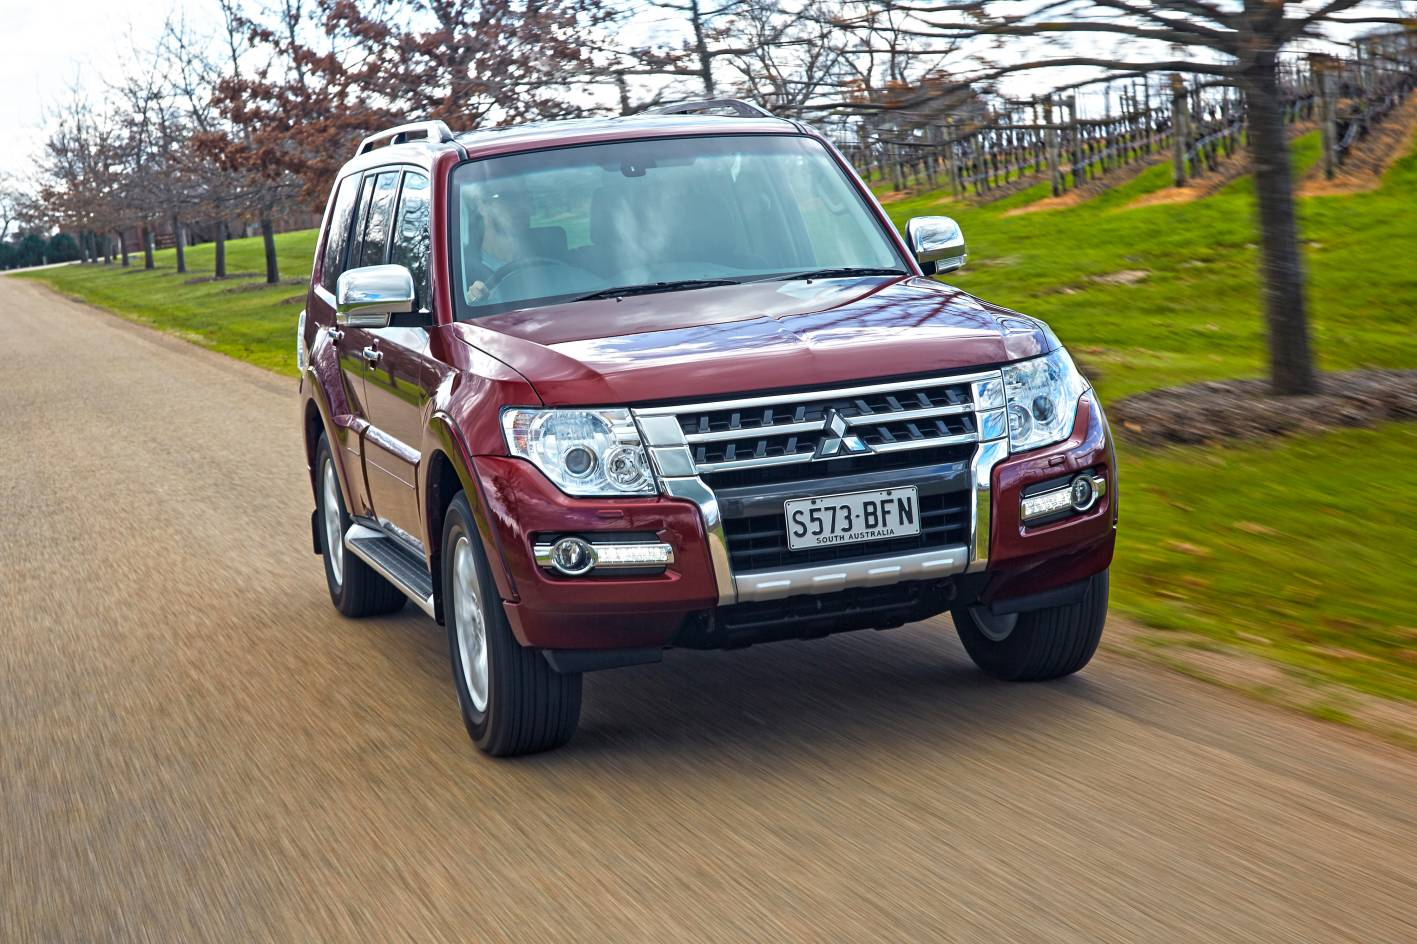 Mitsubishi Pajero fuel consumption comes under scrutiny